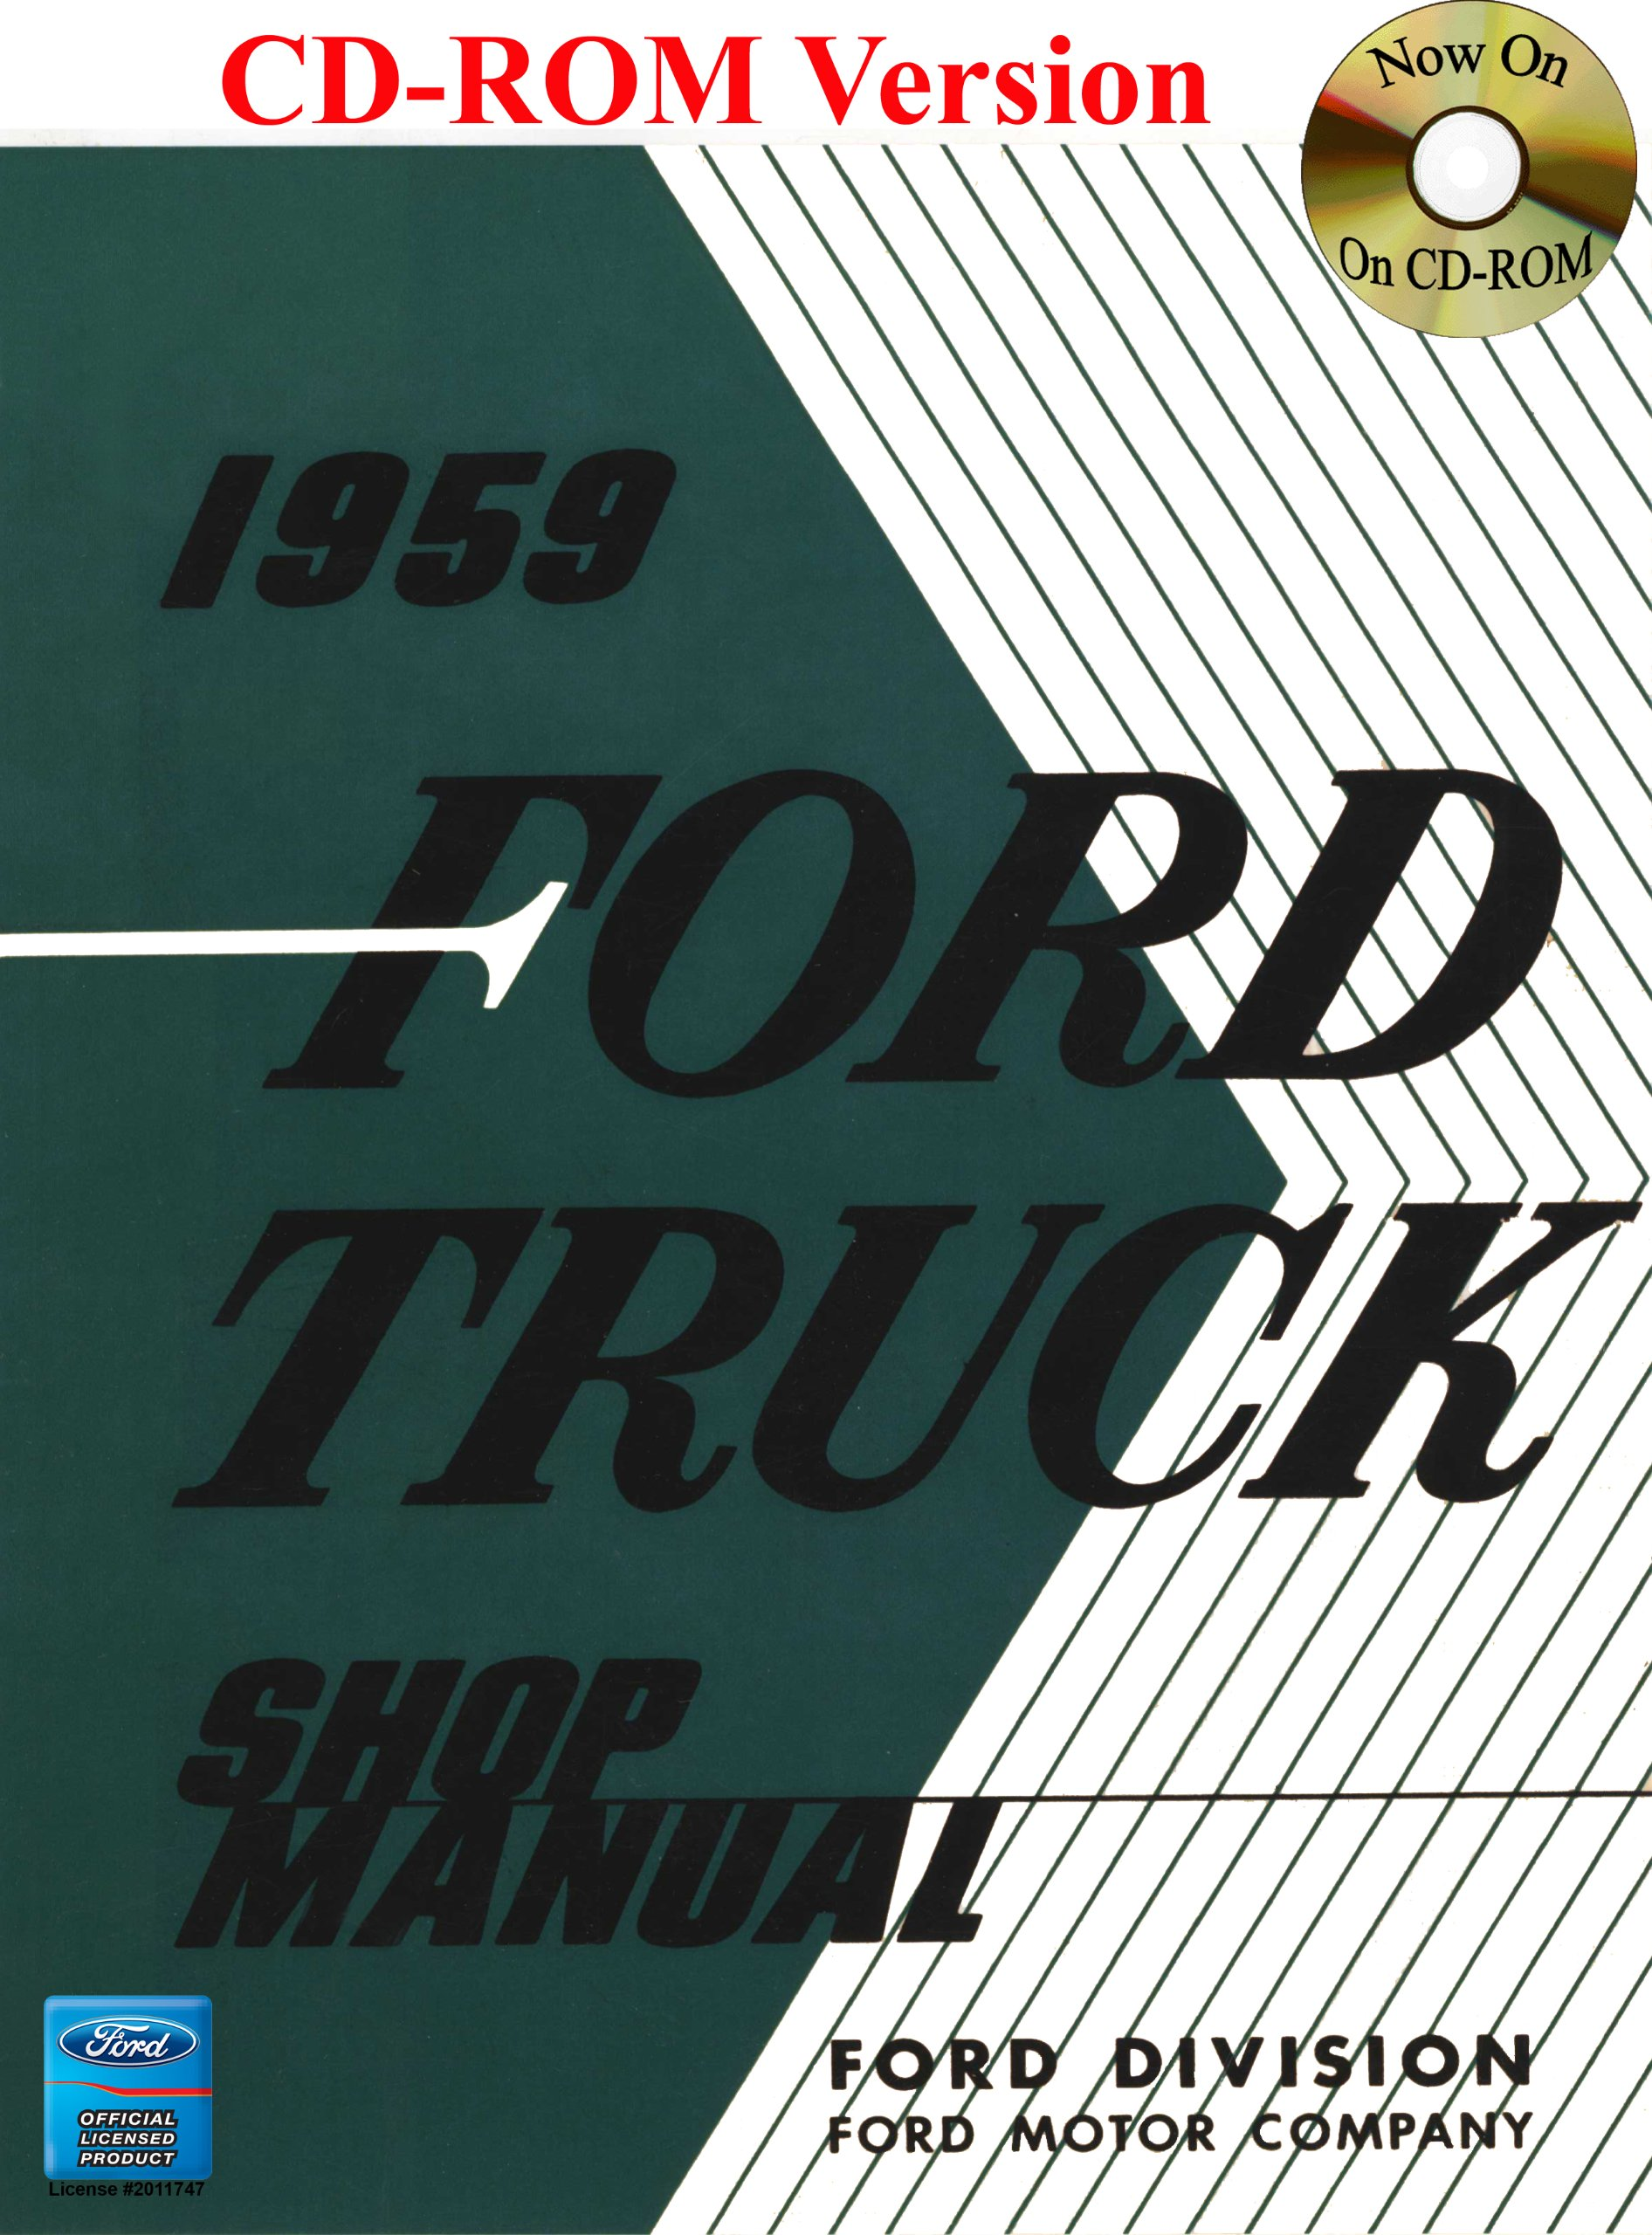 1959 Ford F100 Wiring Diagram Trusted 1960 Truck Diagrams Shop Manual Motor Company David E Leblanc 1964 4000